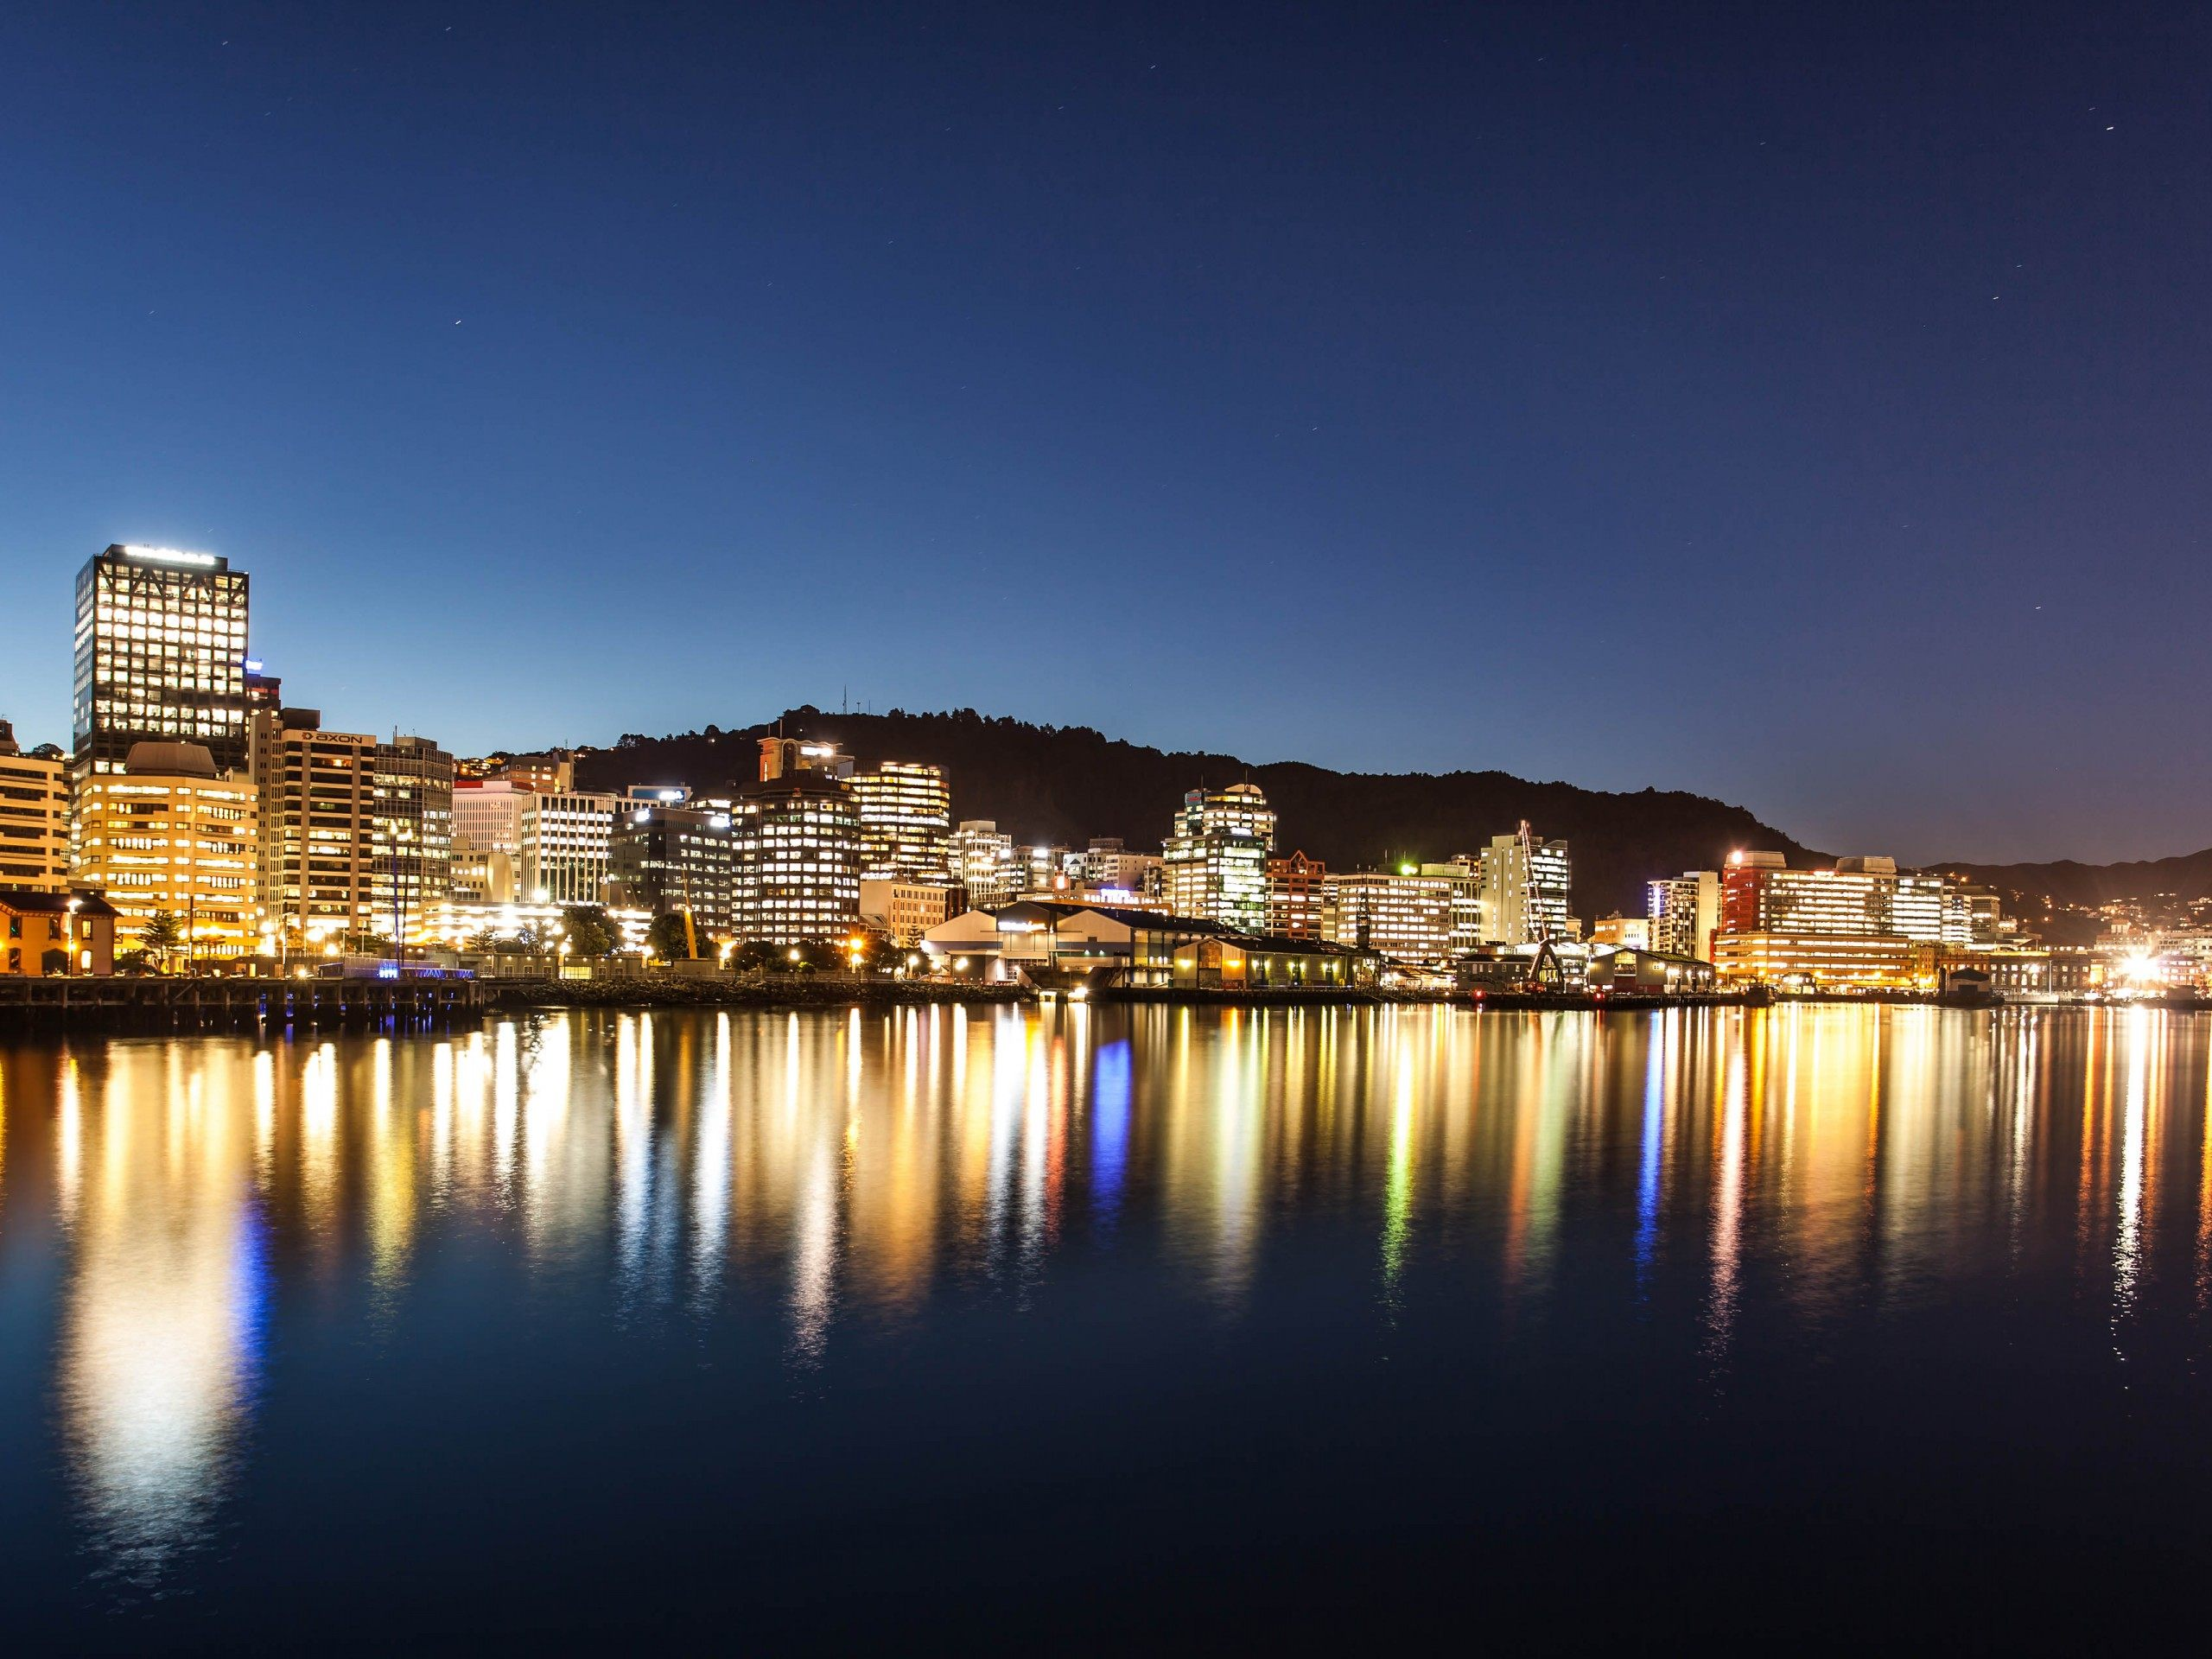 New Zealand City Lif HD Wallpaper Background Images 2560x1920